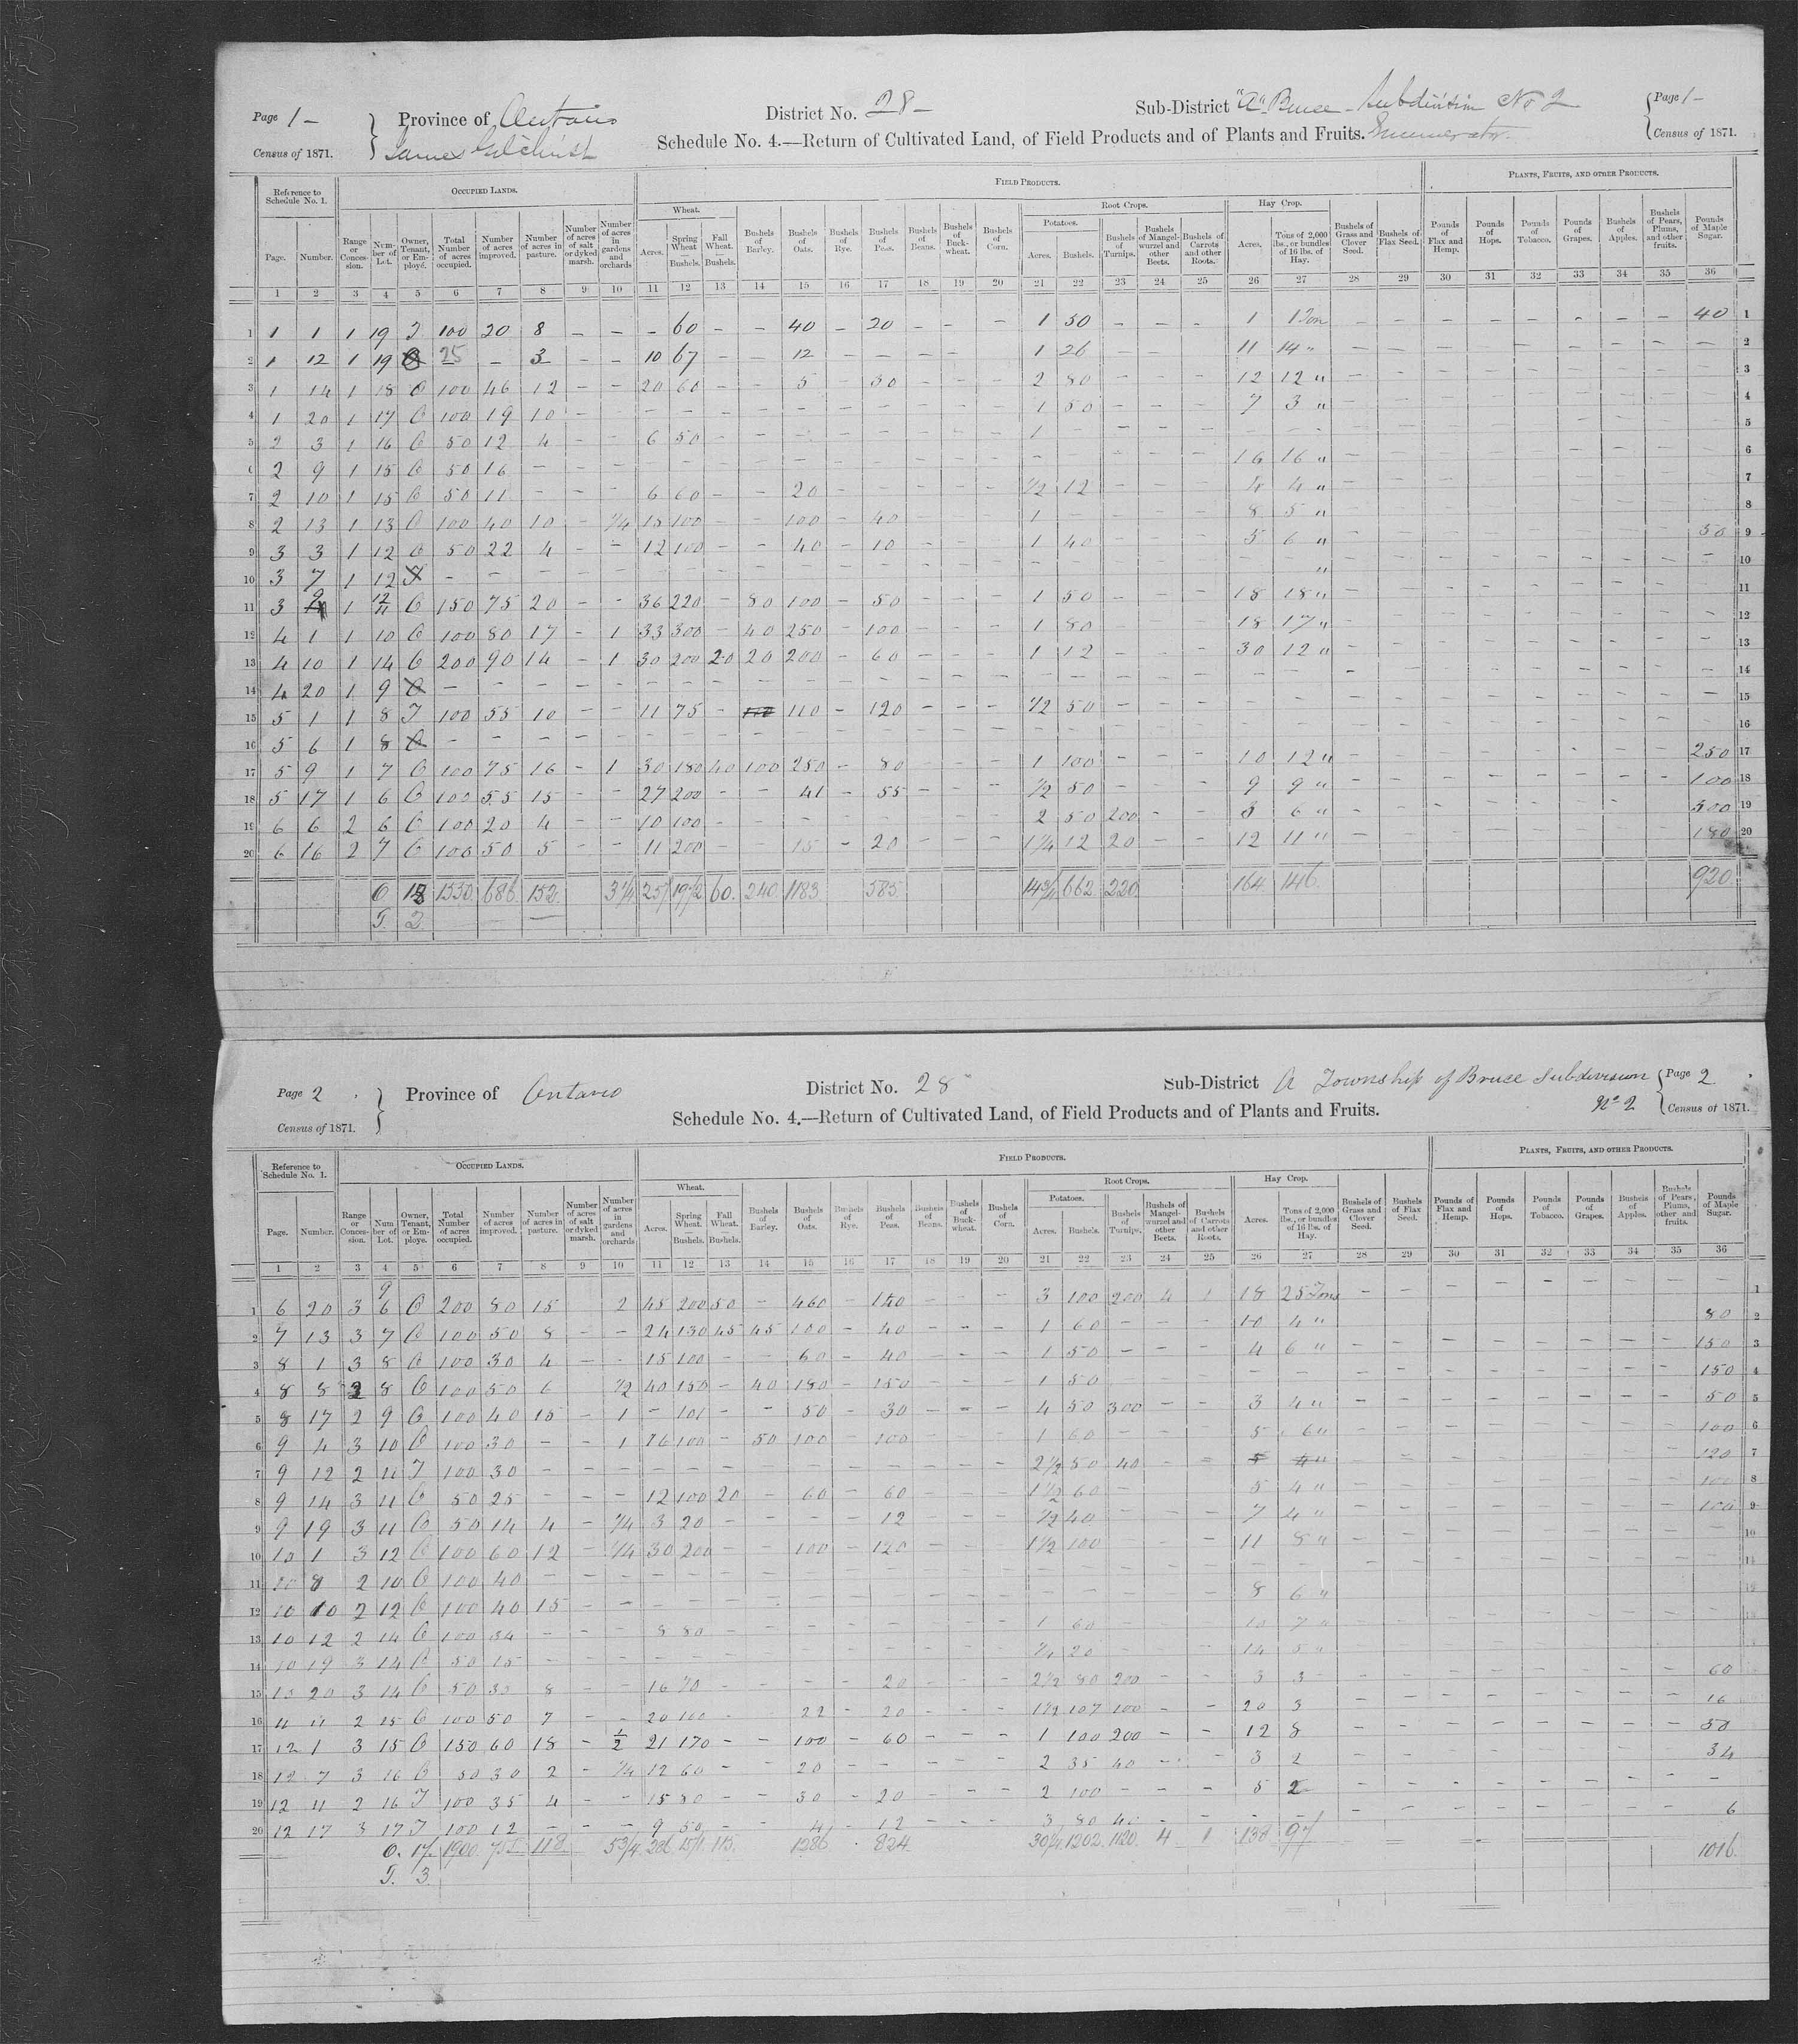 Title: Census of Canada, 1871 - Mikan Number: 142105 - Microform: c-9936